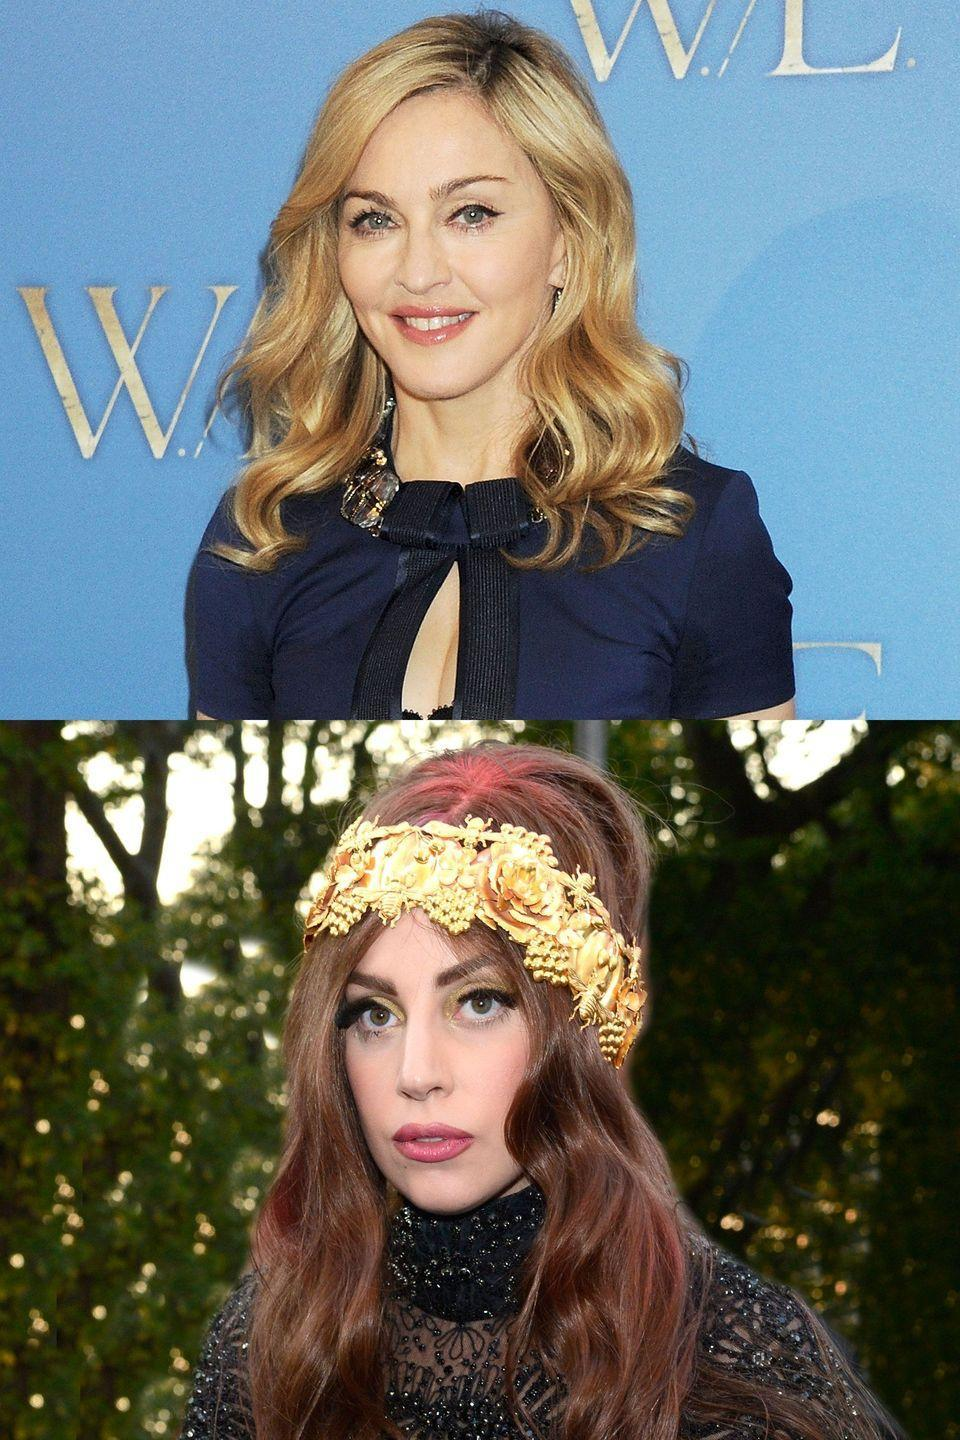 "<p>Gaga began dodging Madonna comparisons at virtually the very start of her career—the two even mocked the ingenue vs. aging star trope <a href=""https://vimeo.com/187050743"" rel=""nofollow noopener"" target=""_blank"" data-ylk=""slk:in a (terrible) sketch"" class=""link rapid-noclick-resp"">in a (terrible) sketch</a> on <em>Saturday Night Live</em> in 2009. But when Gaga's 2011 hit ""Born This Way"" was <a href=""http://www.hollywoodreporter.com/news/lady-gagas-born-way-criticized-98922"" rel=""nofollow noopener"" target=""_blank"" data-ylk=""slk:widely compared"" class=""link rapid-noclick-resp"">widely compared</a> to Madge's ""Express Yourself,"" Madonna decided to take a stand. In 2012, she fully embraced the feud, famously <a href=""http://www.hollywoodreporter.com/news/madonna-lady-gaga-born-this-way-281631"" rel=""nofollow noopener"" target=""_blank"" data-ylk=""slk:telling ABC News"" class=""link rapid-noclick-resp"">telling ABC News</a> that the song was ""reductive."" Later that year, Madonna grabbed notice for a mash-up of the two songs on her MDNA tour, and Gaga fired back without naming names at a New Zealand concert. ""It sometimes makes people feel better about themselves to put other people down or make fun of them or maybe make a mockery of their work, and that doesn't make me feel good at all,"" <a href=""http://www.hollywoodreporter.com/news/lady-gaga-madonna-born-this-way-335943"" rel=""nofollow noopener"" target=""_blank"" data-ylk=""slk:she said"" class=""link rapid-noclick-resp"">she said</a>. ""That just makes me feel like I'm not being a good human being.""</p>"